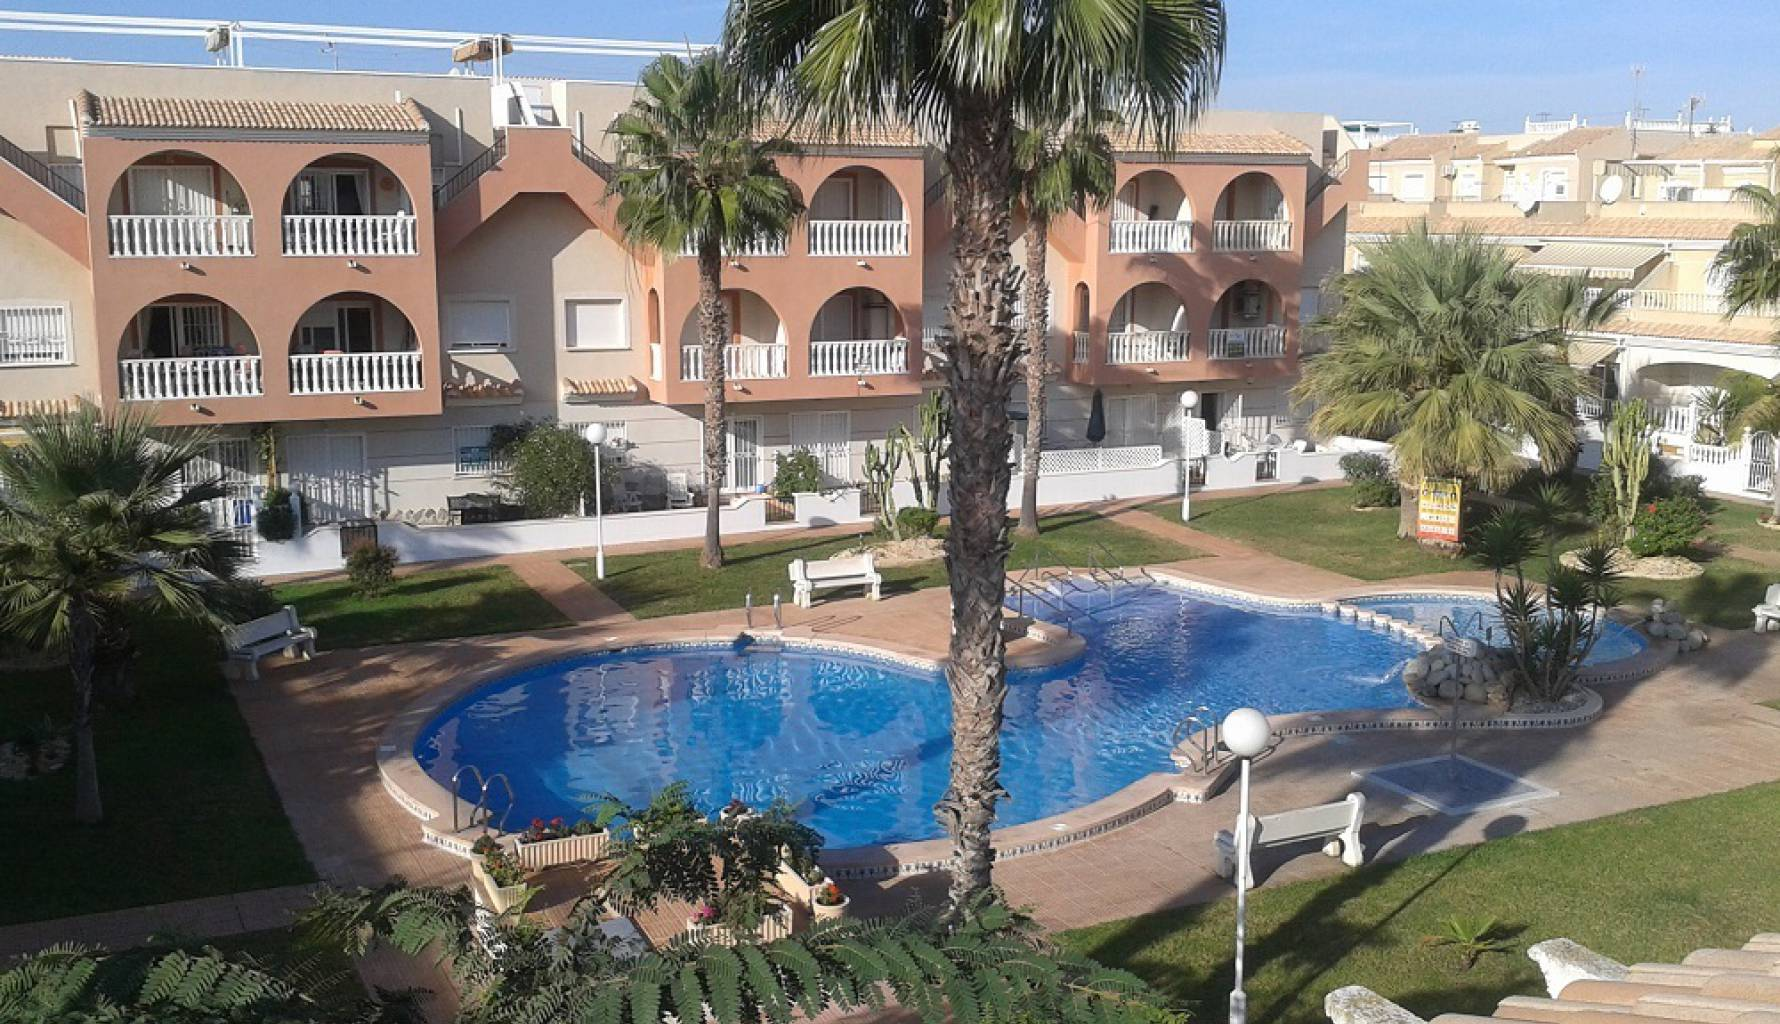 Sale - Apartment/Flat - Los Alcázares - Gated complex El Divino